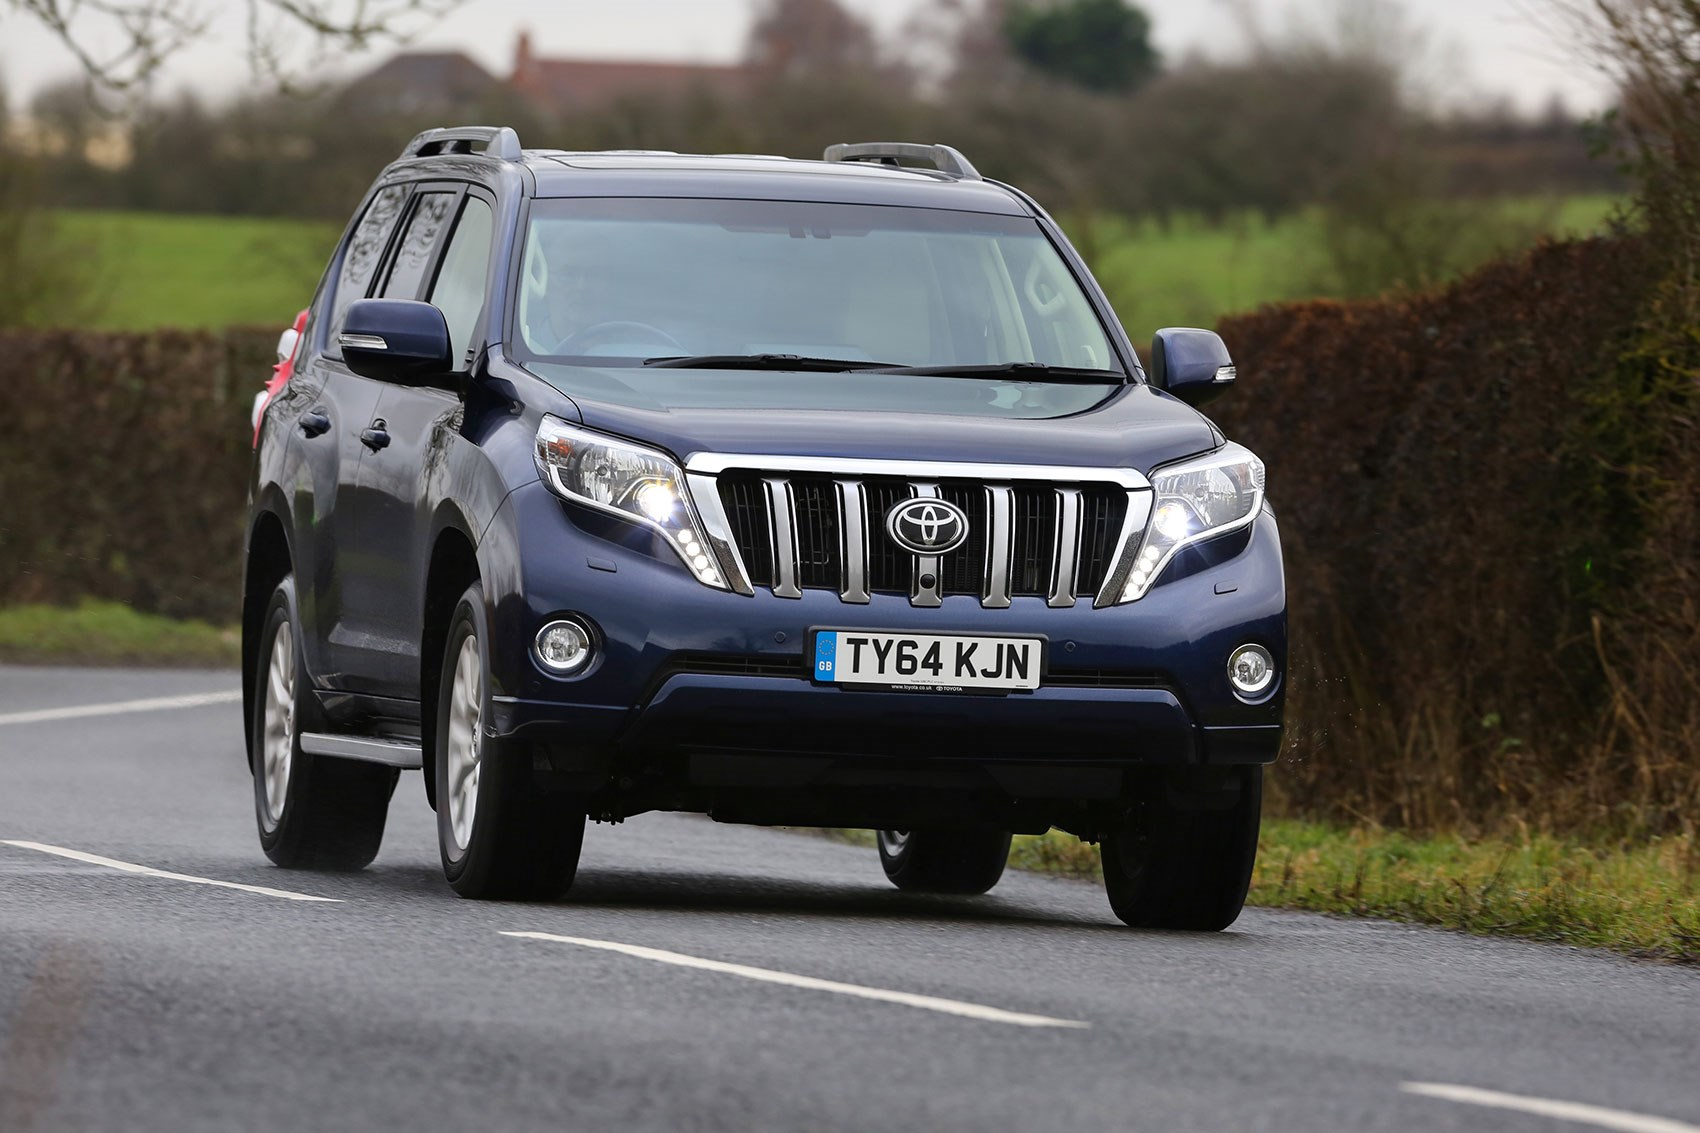 Toyota Land Cruiser 3 0 D-4D Icon (2015) review | CAR Magazine